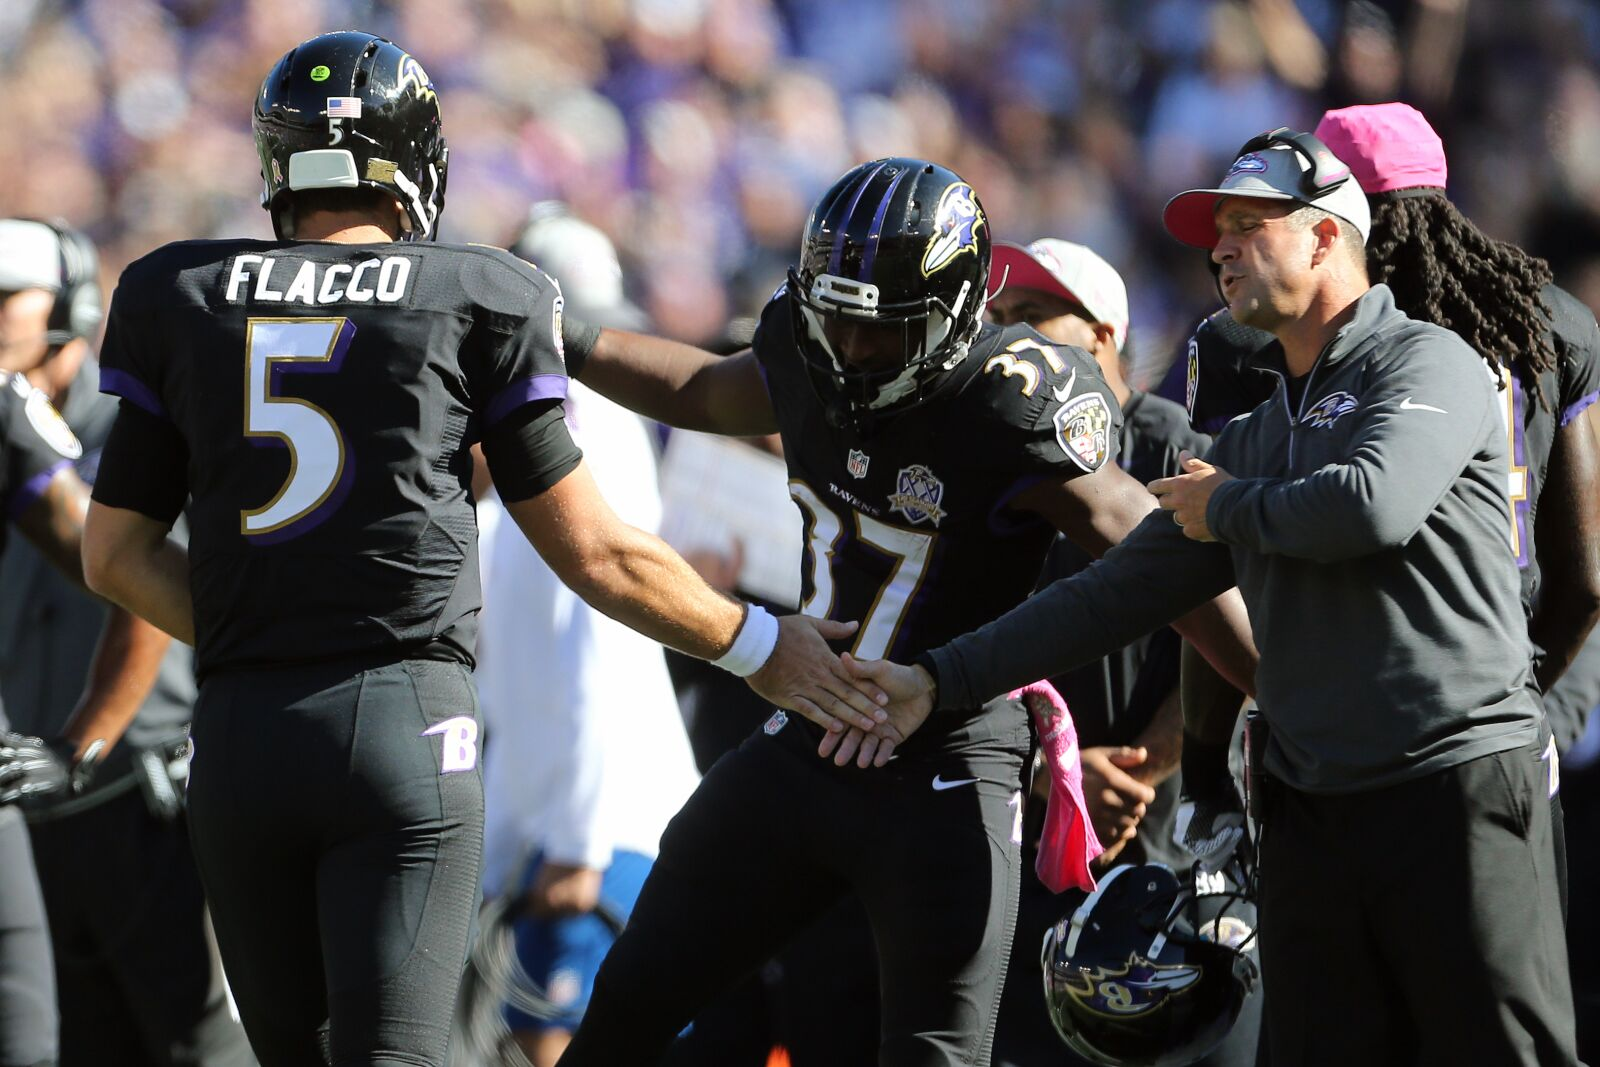 John Harbaugh staying attached to Joe Flacco right to bitter end